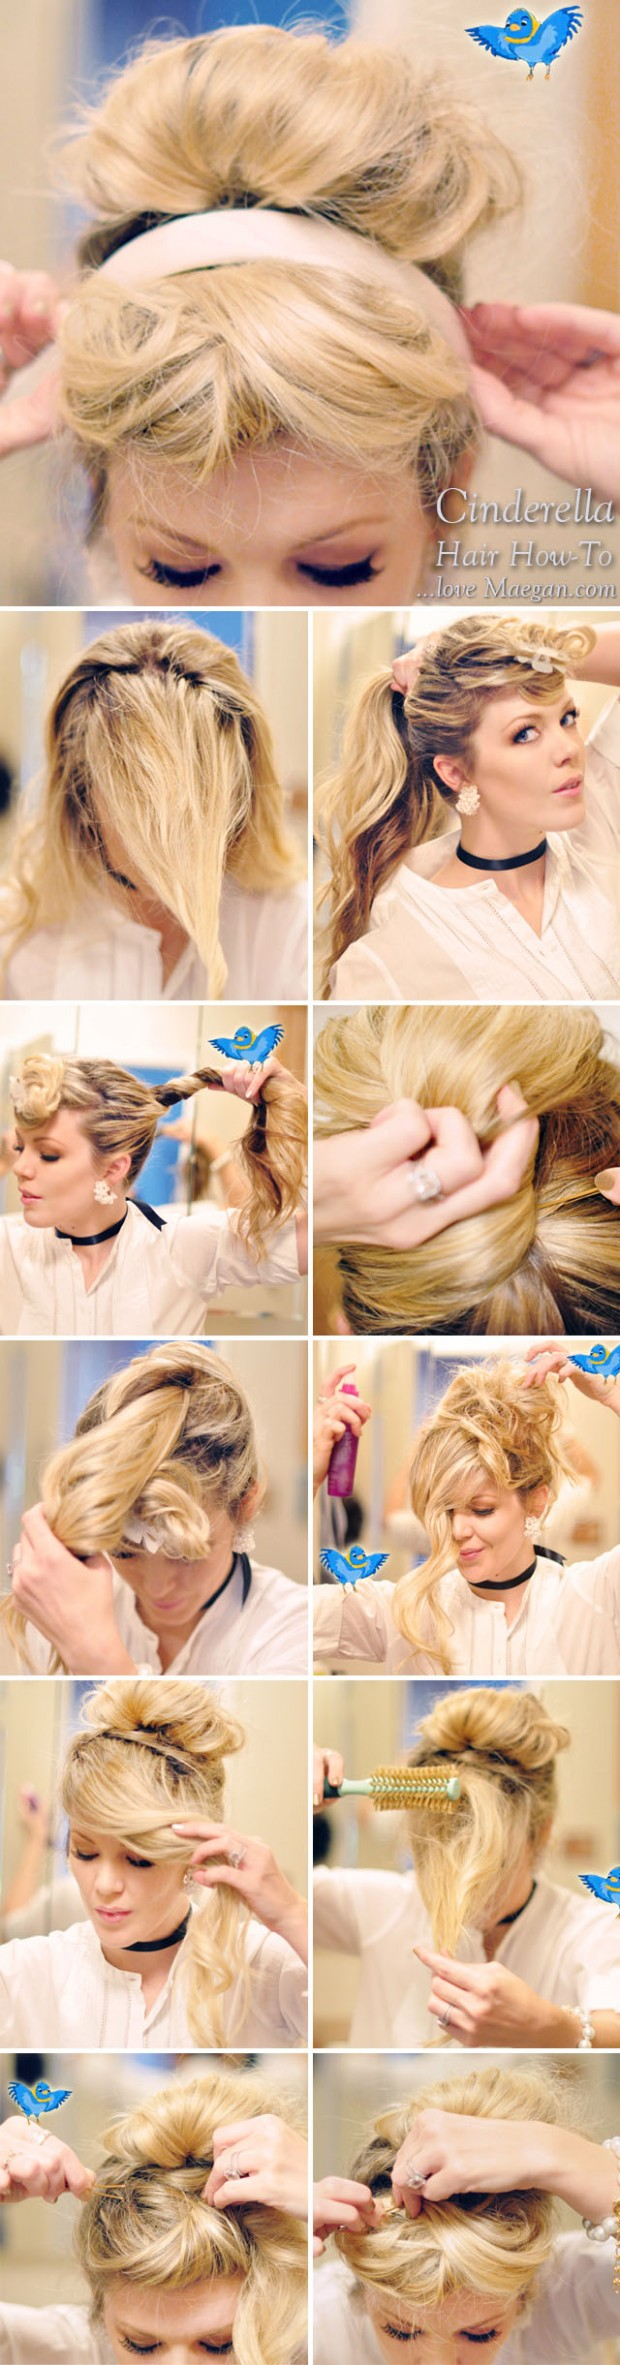 For a step-by-step makeup and hair tutorial, click through the link